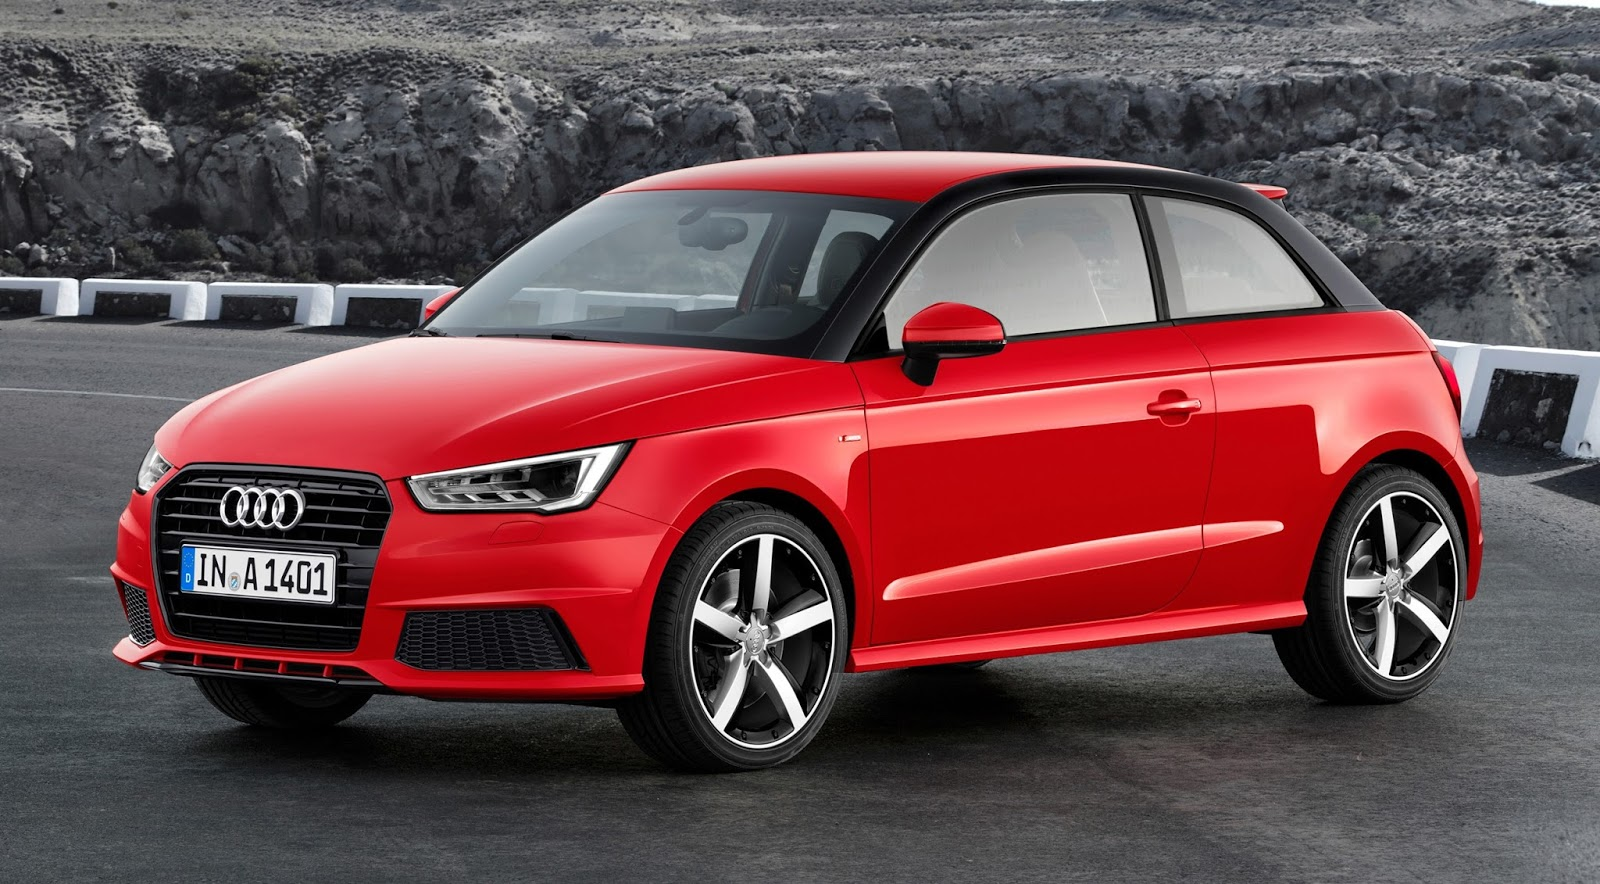 audi a1 2017 check out the details of the new model top. Black Bedroom Furniture Sets. Home Design Ideas